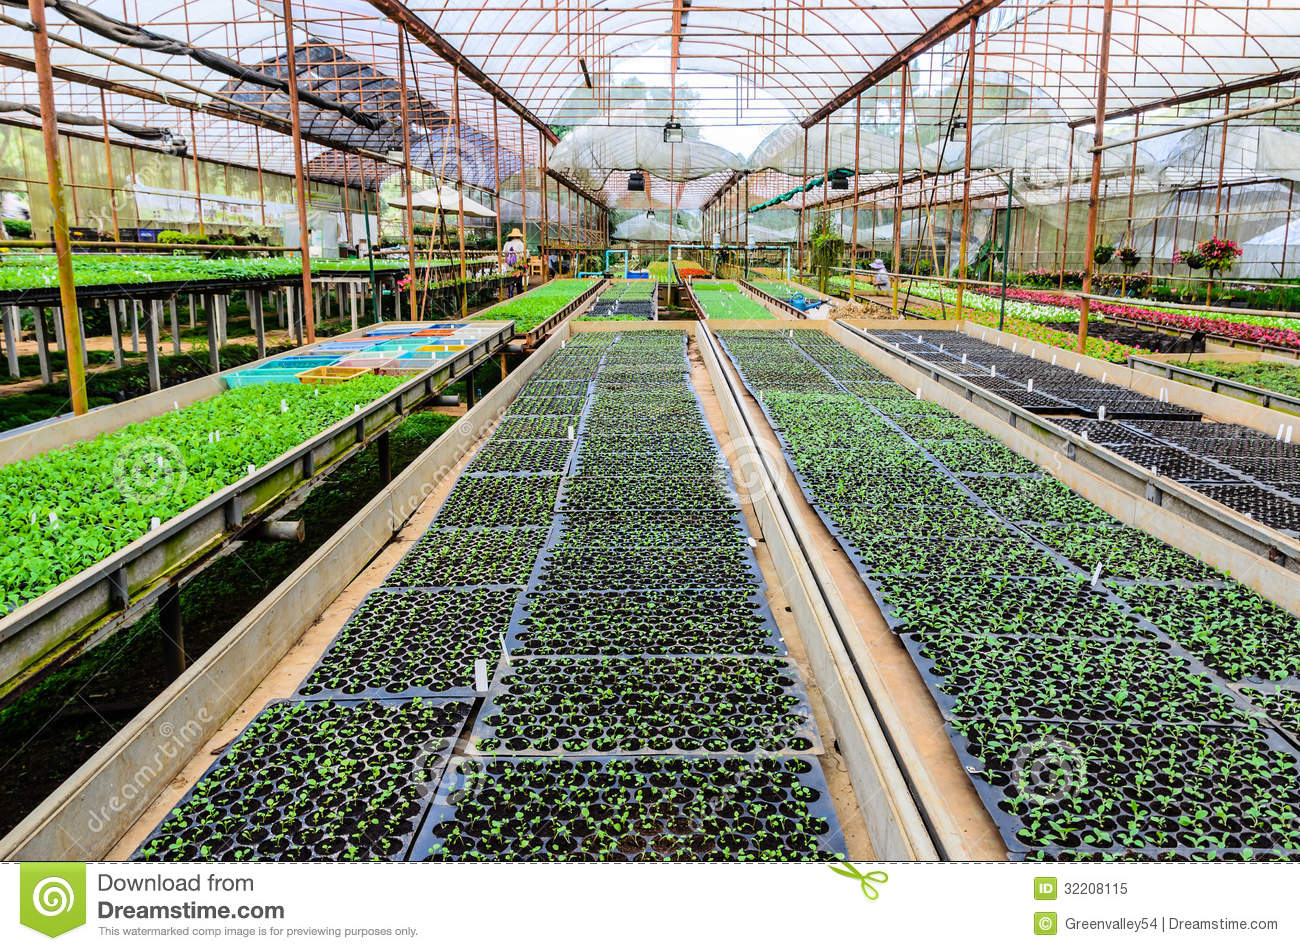 PLANT NURSERY OF FLOWERS AND ORNAMENTAL PLANTS Stock Image - Image ...